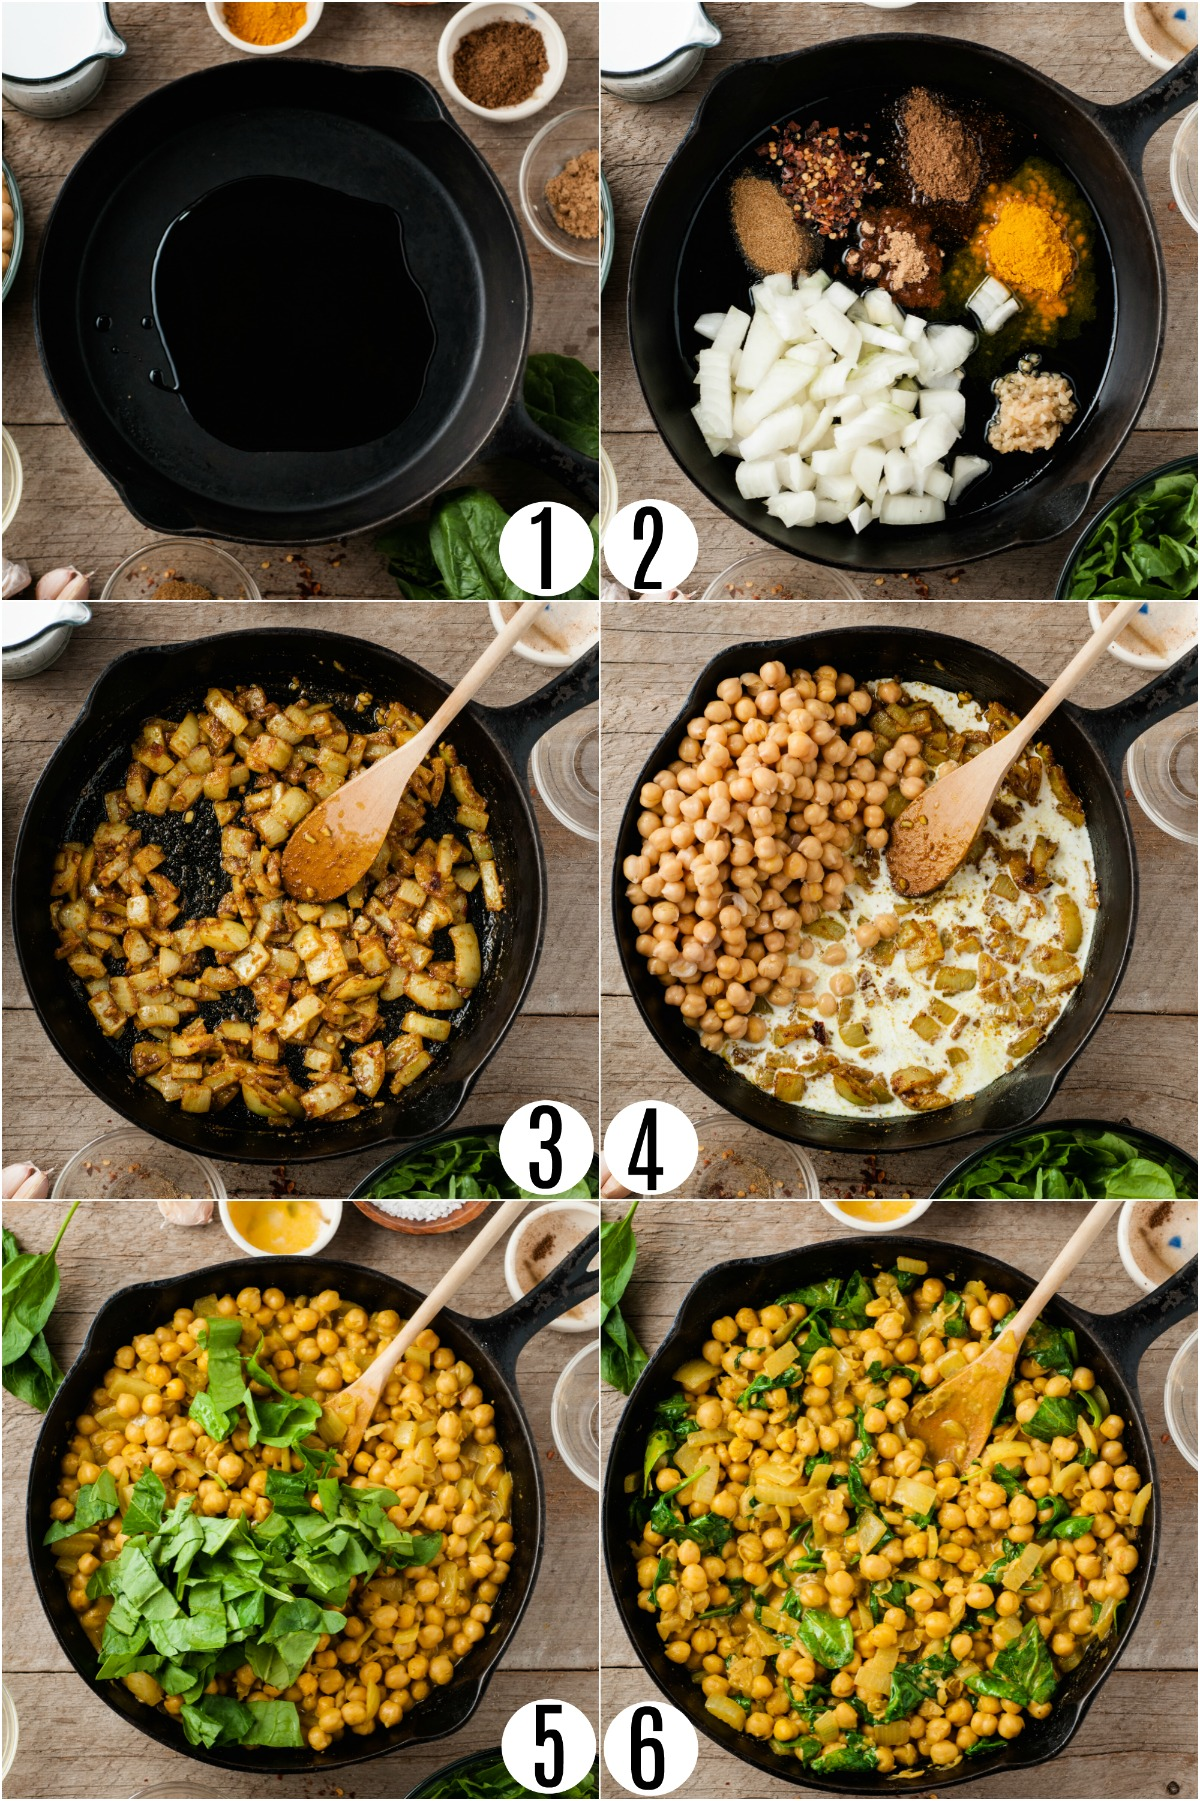 Step by step photos showing how to make chickpea curry.